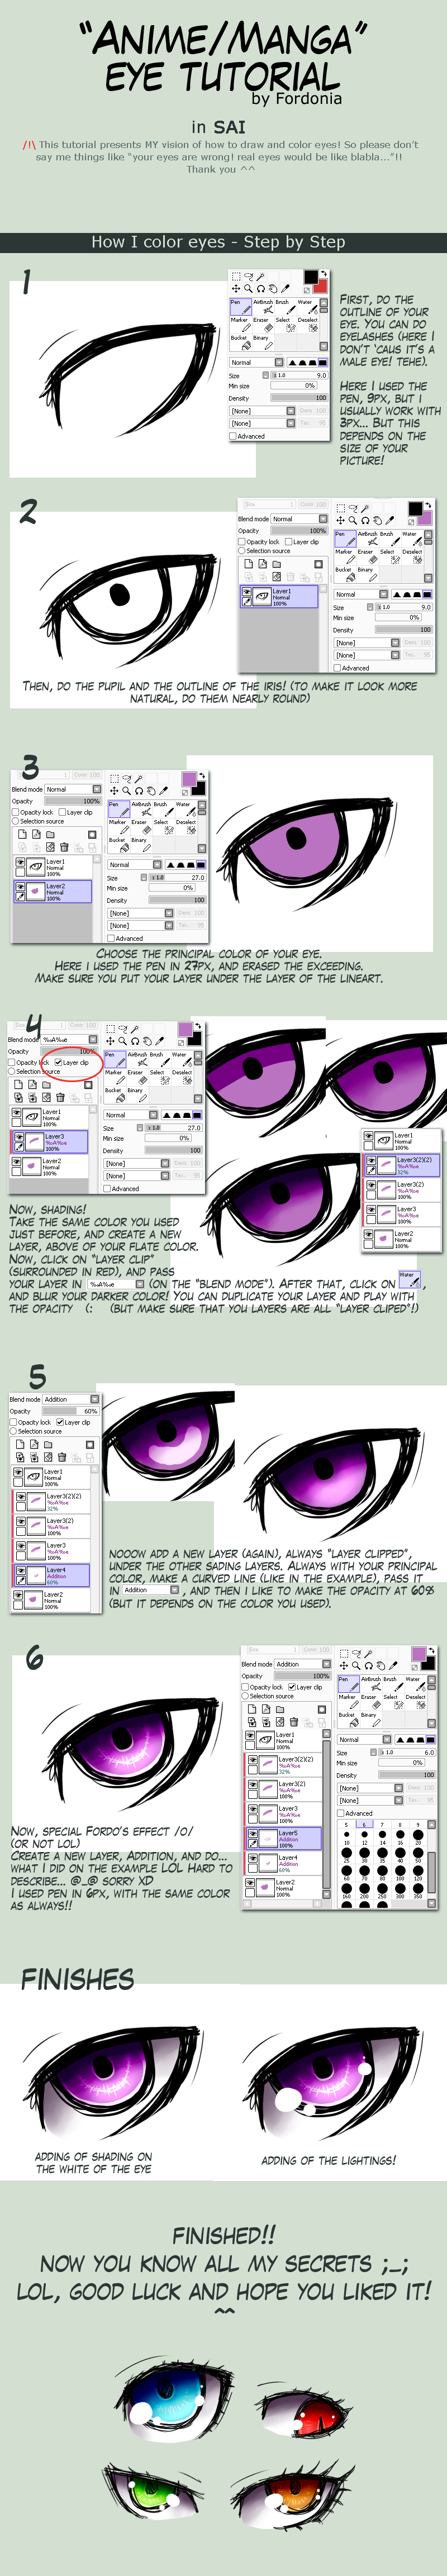 Eye tutorial - SAI by fordonia